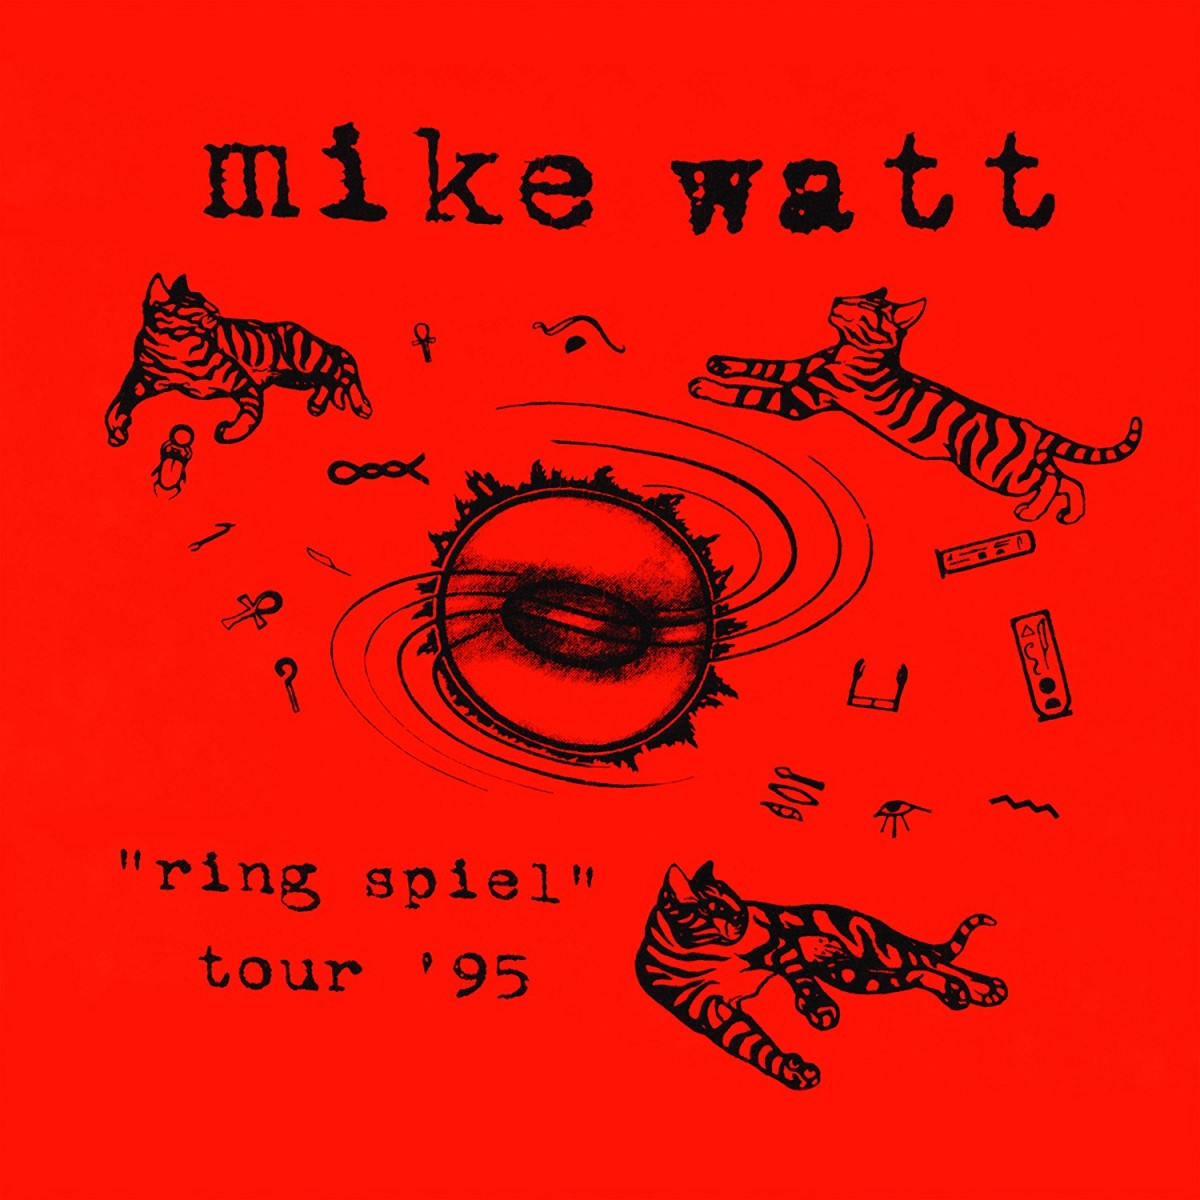 Mike Watt Ring Spiel Tour